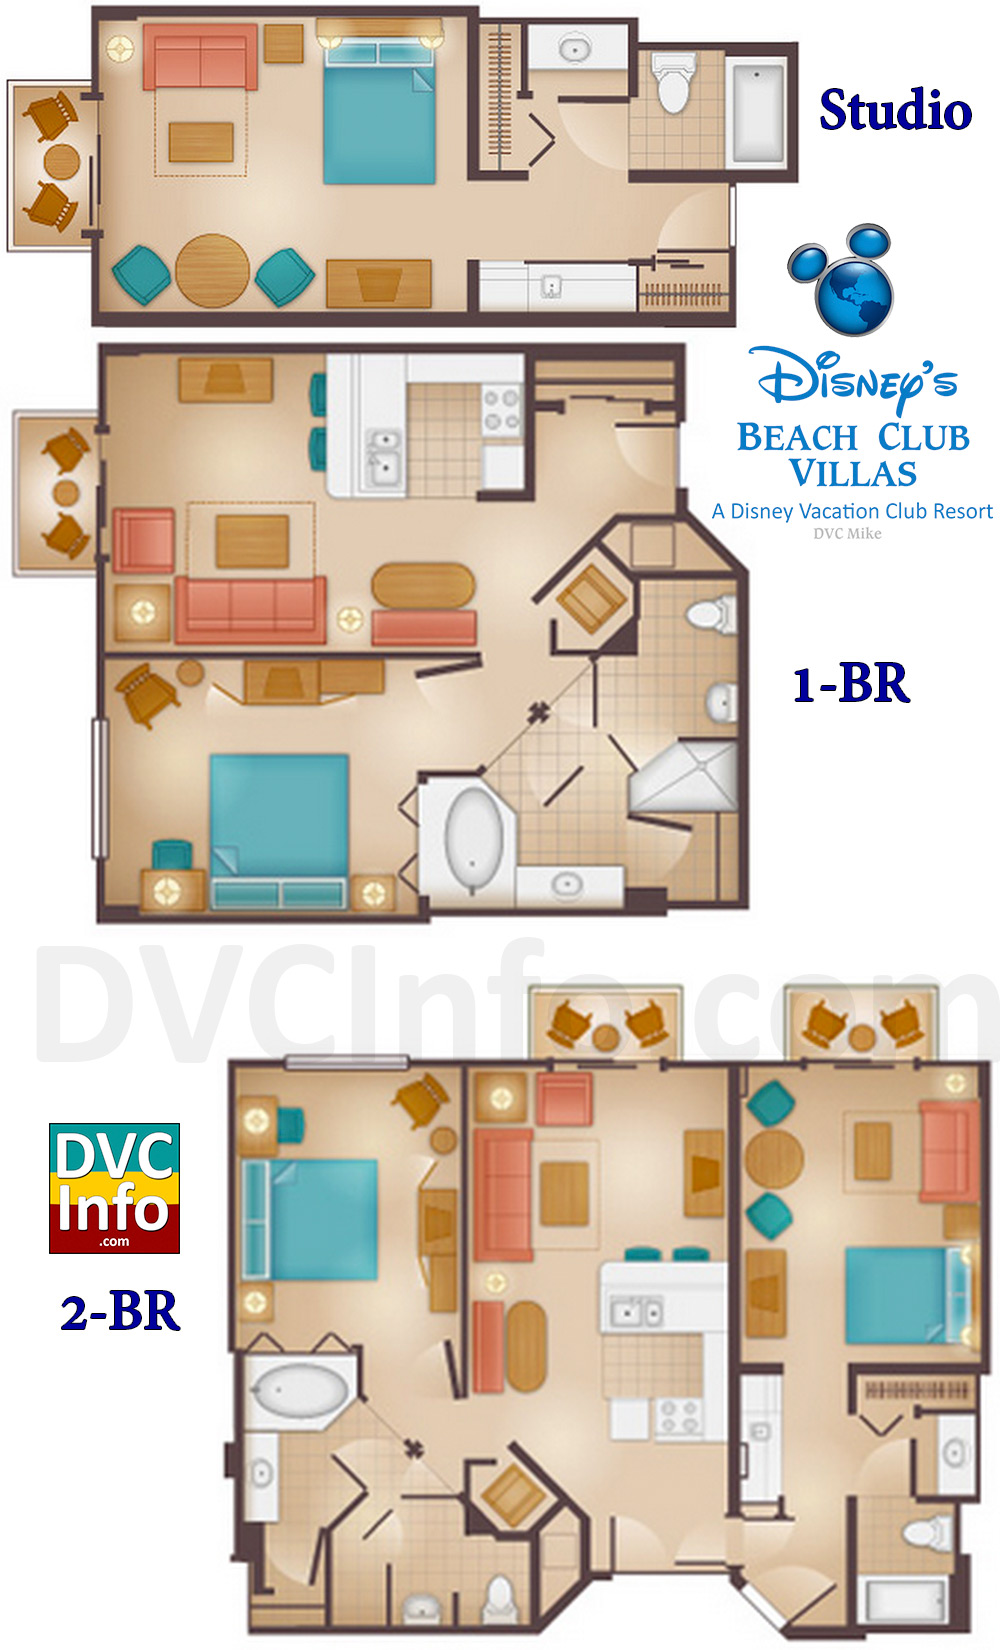 Disney S Beach Club Villas Dvcinfo Com